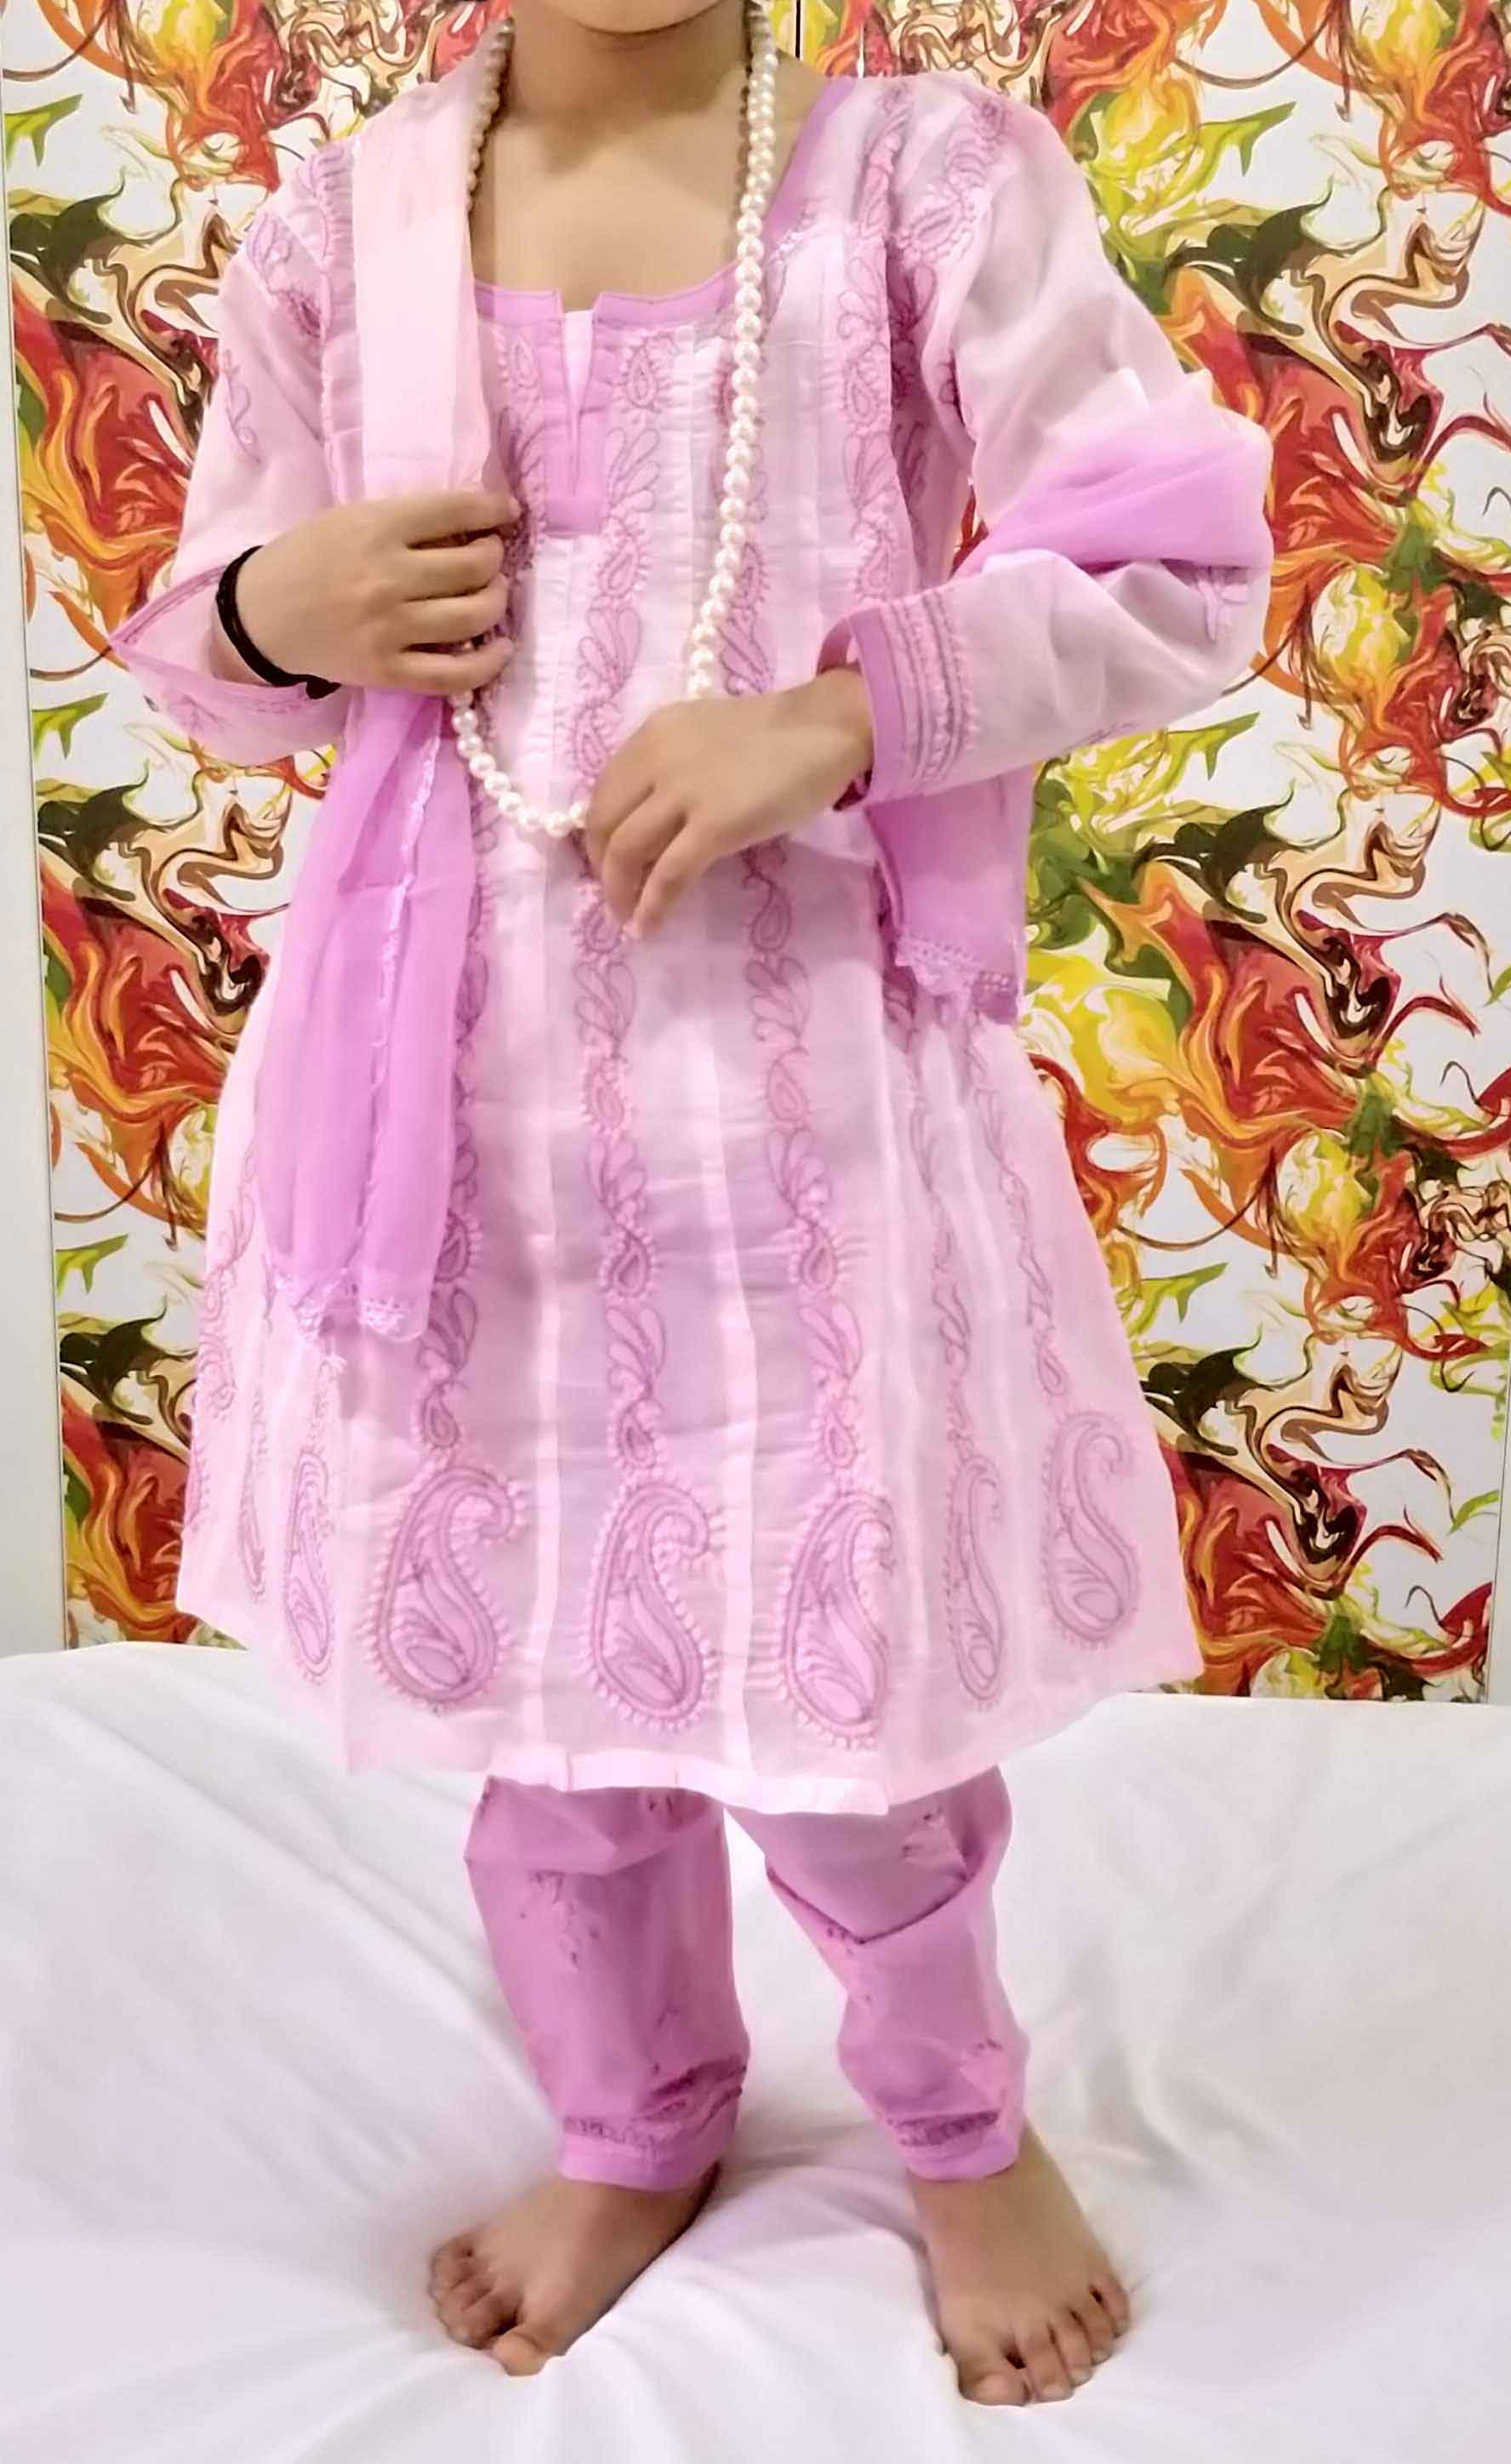 db5ca77ff1 Baby Pink Lucknowi Chikankari Anarkali Suit for Girls - RZUstyle